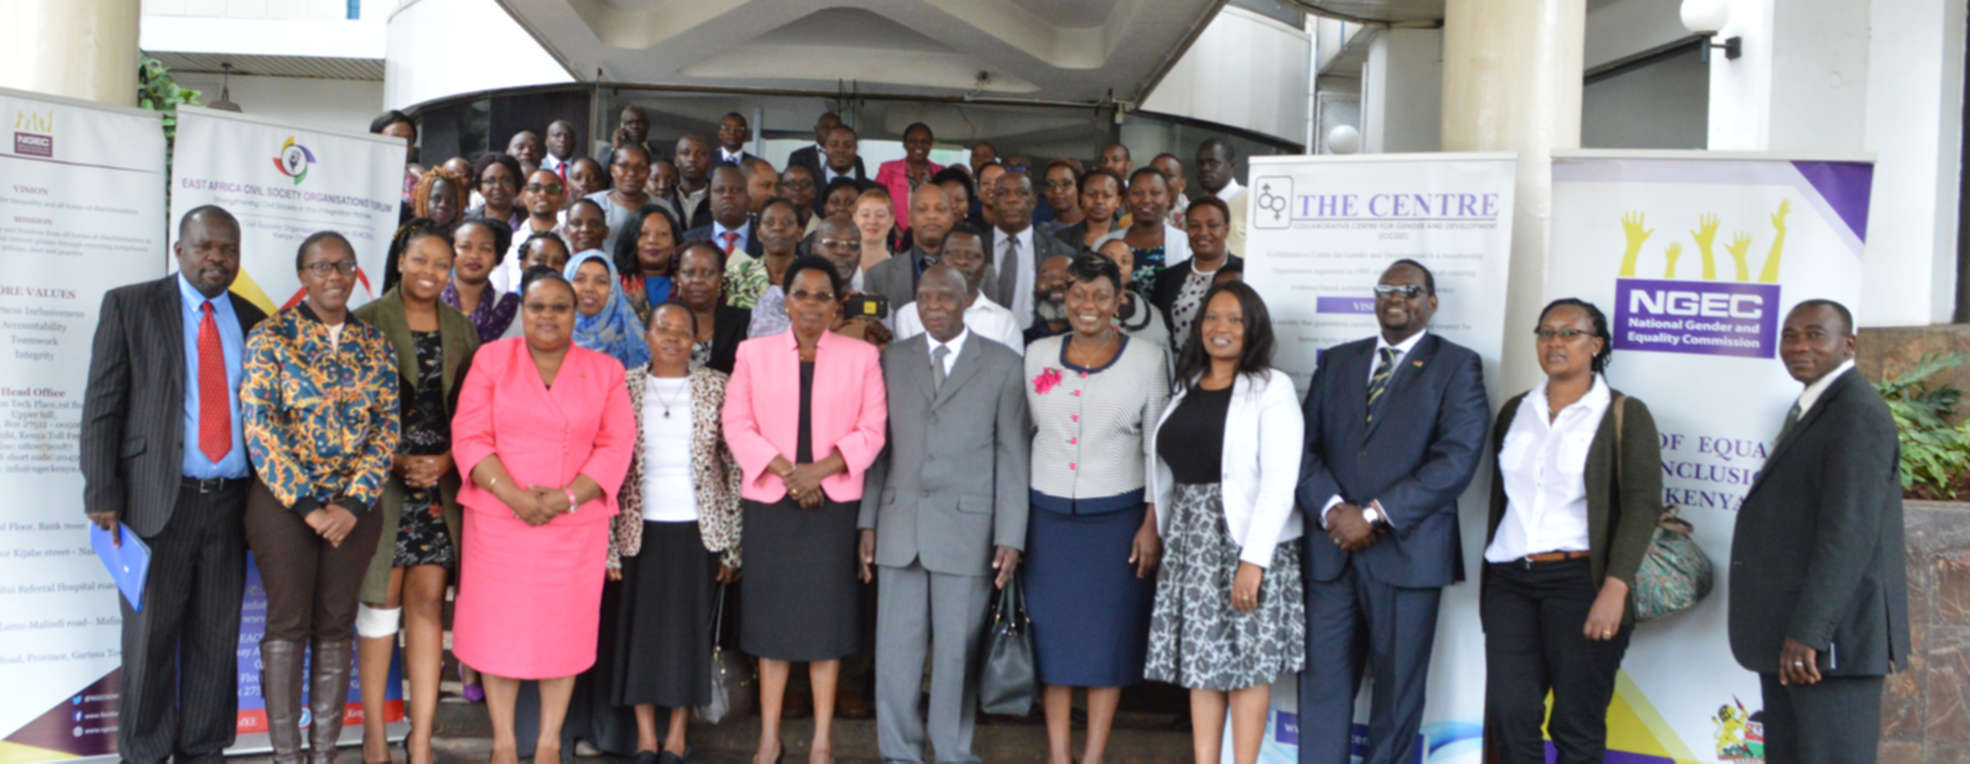 Gender, Equality Commission Kenya